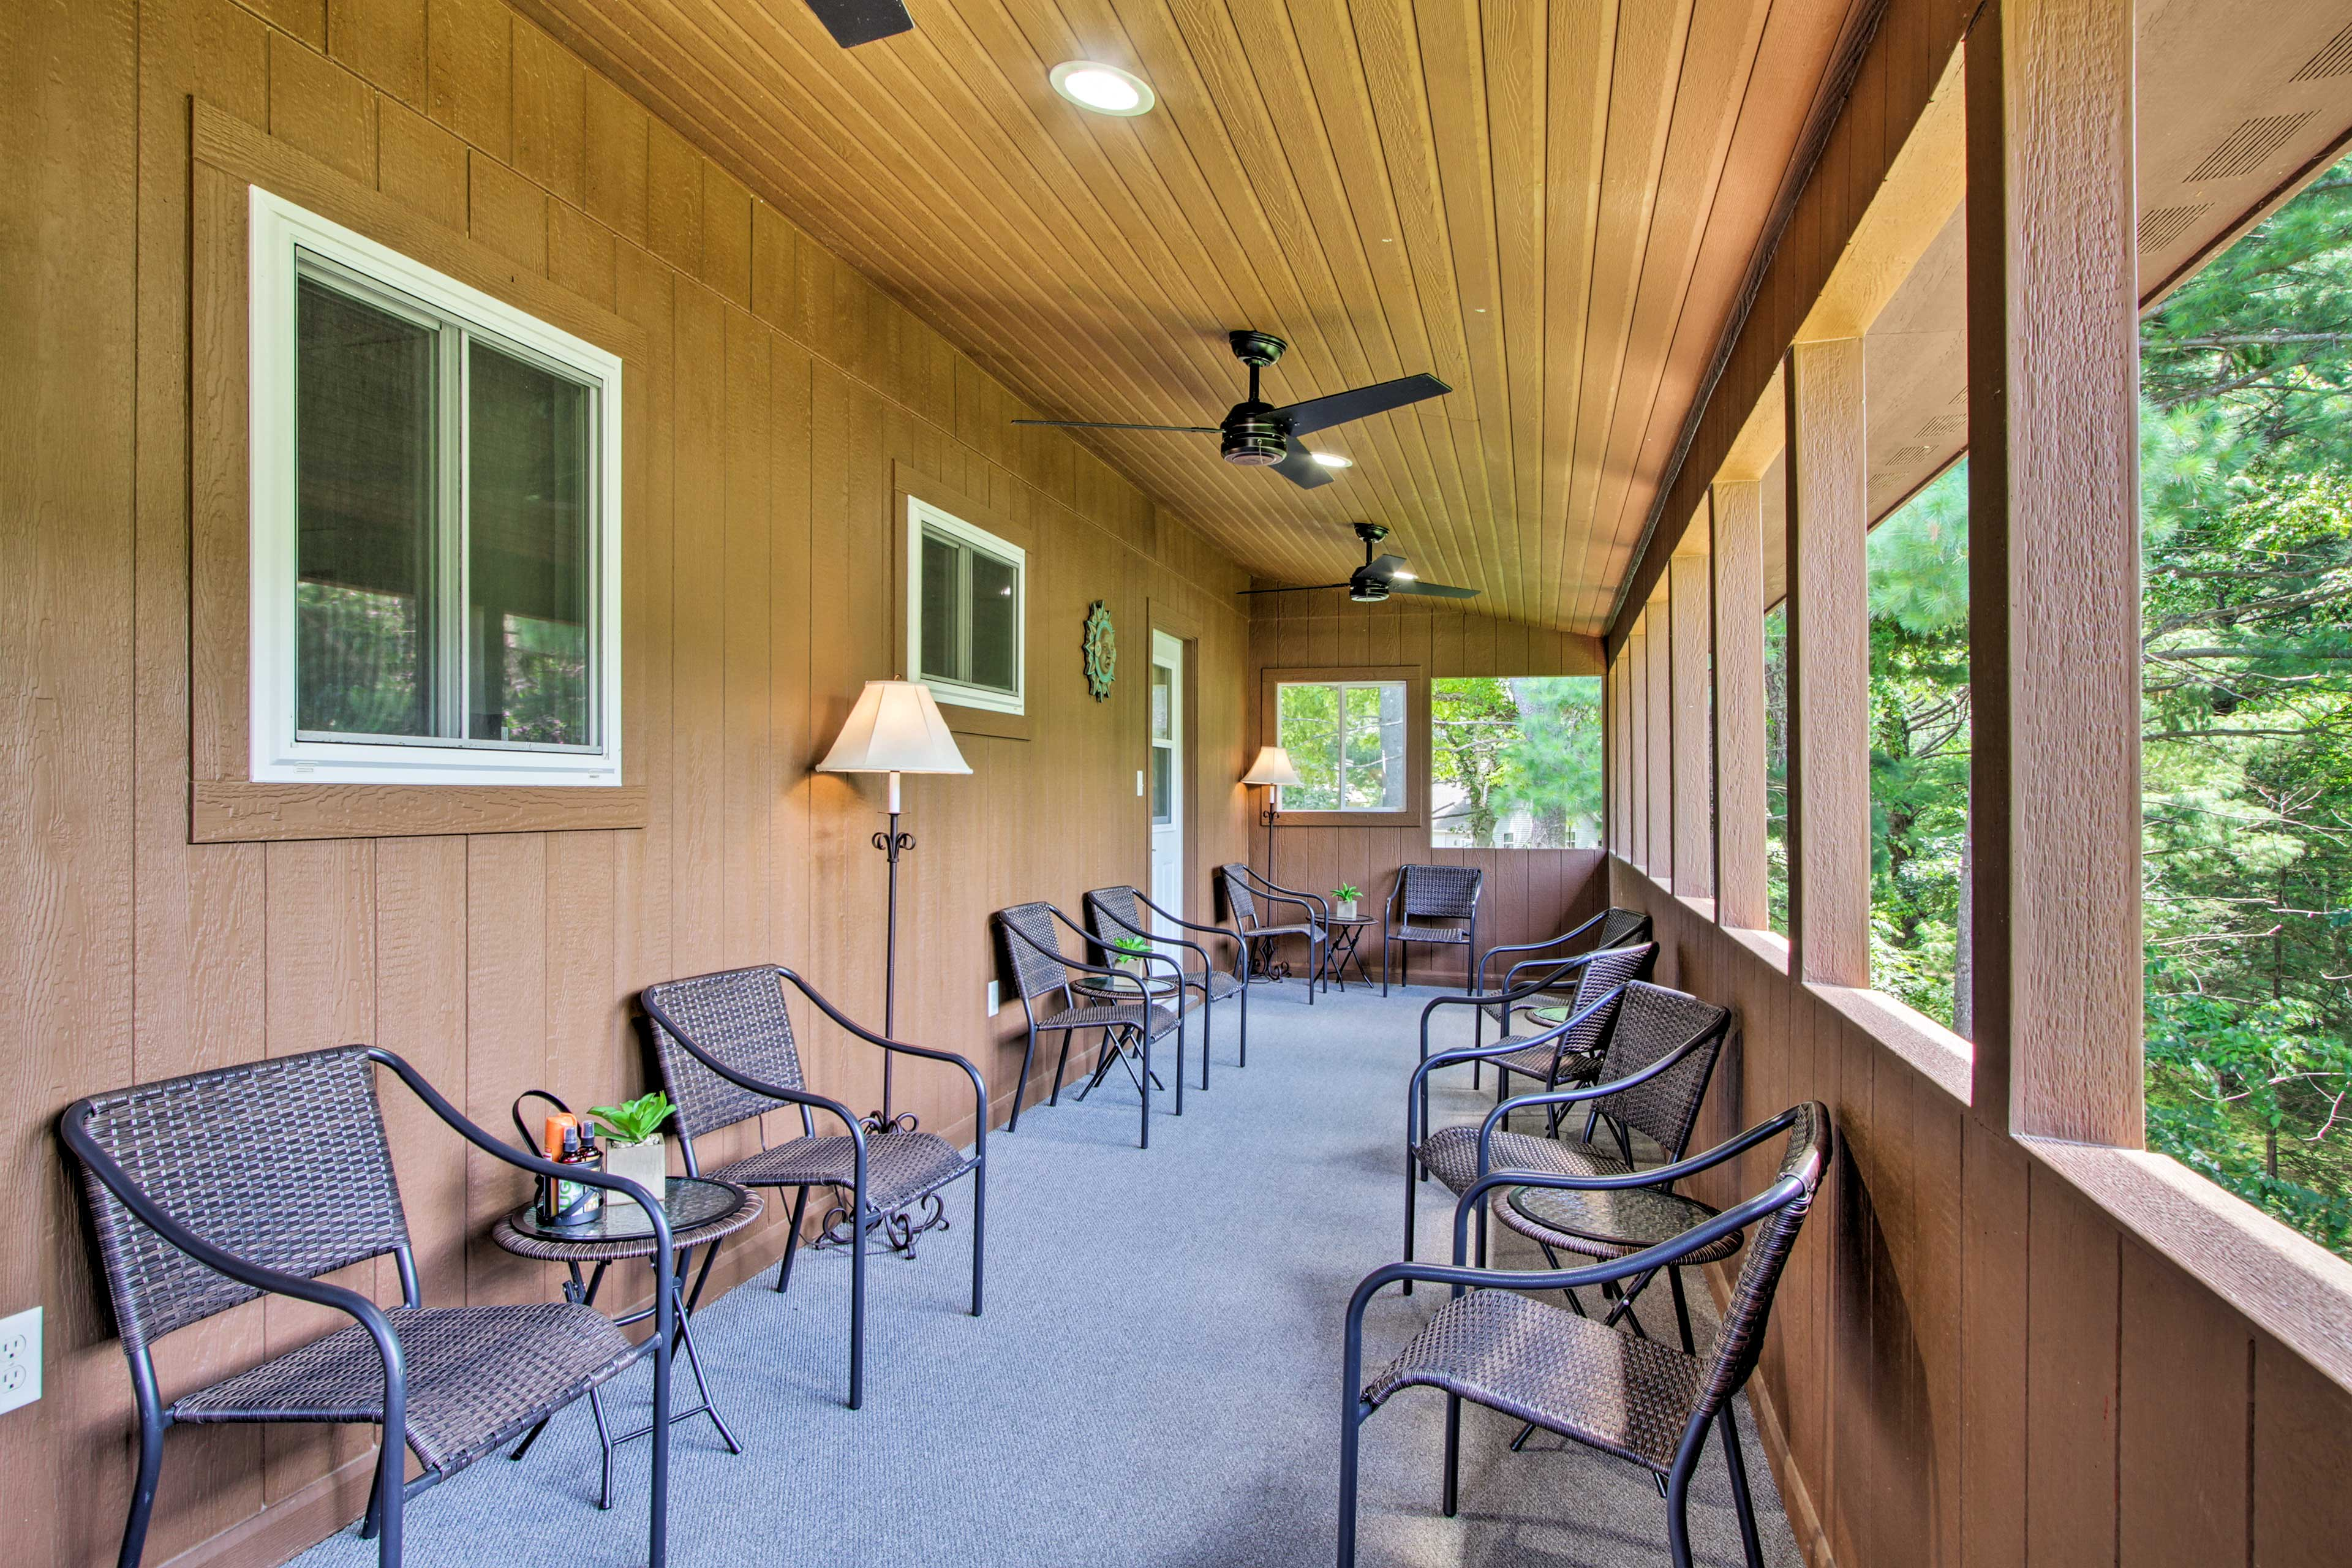 Step out to the sunroom and enjoy the river views!